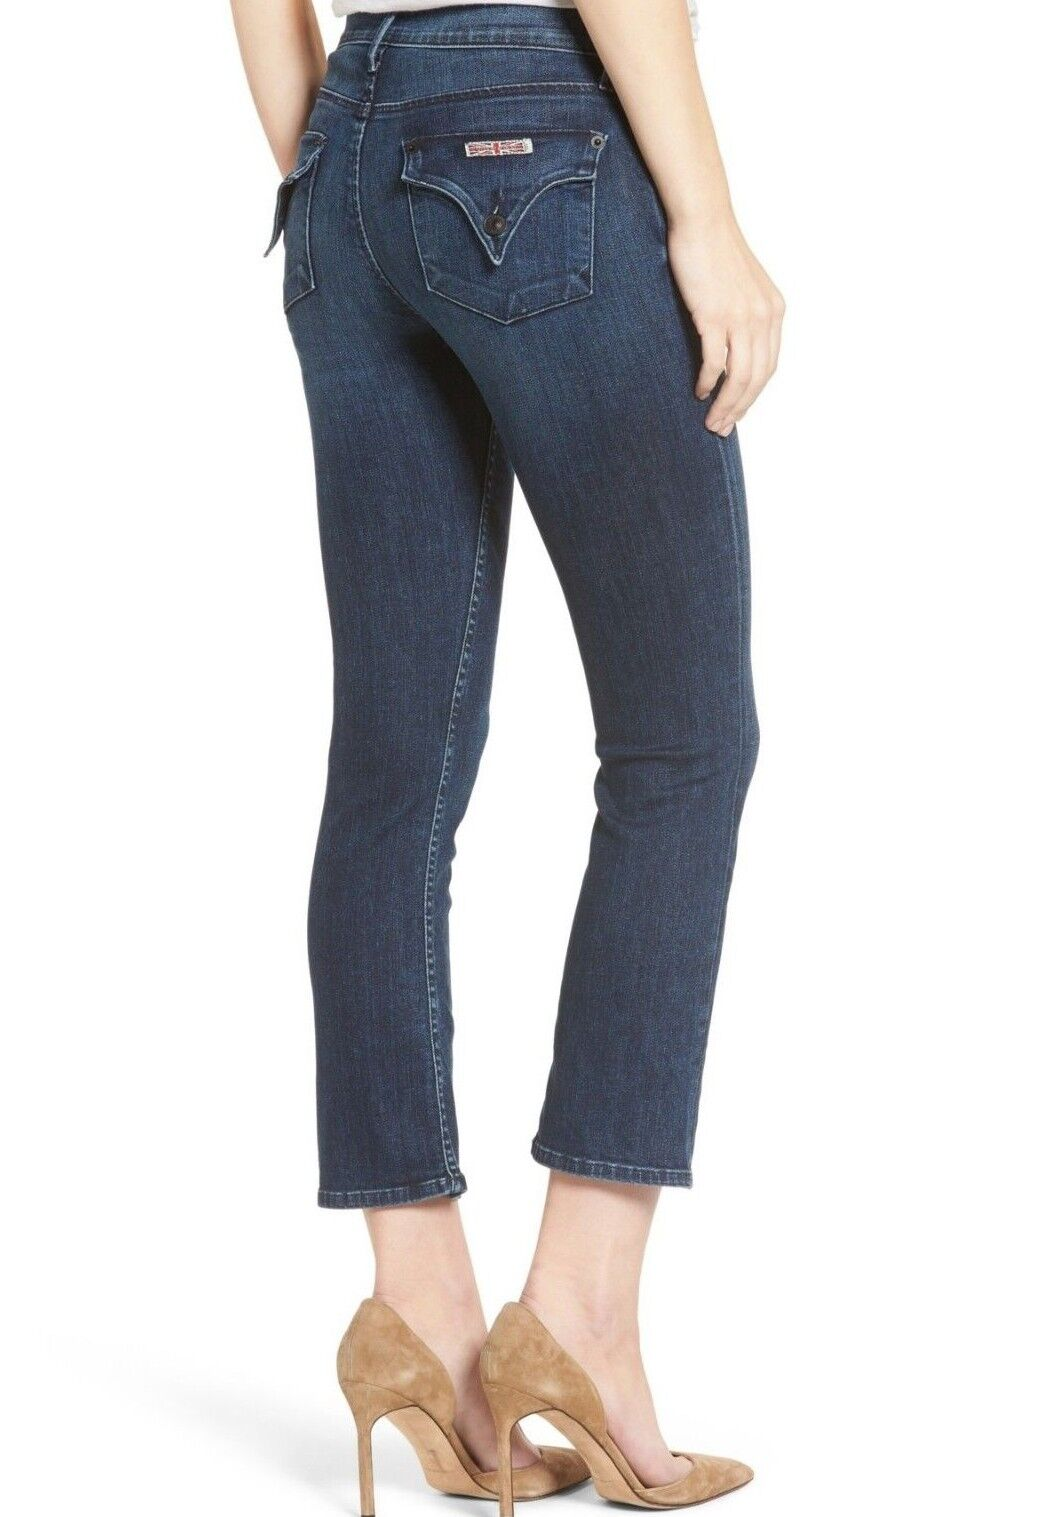 198 NWT HUDSON Sz28 BAILEE MIDRISE CROP BABY BOOTCUT STRETCH JEANS MOONSHINE